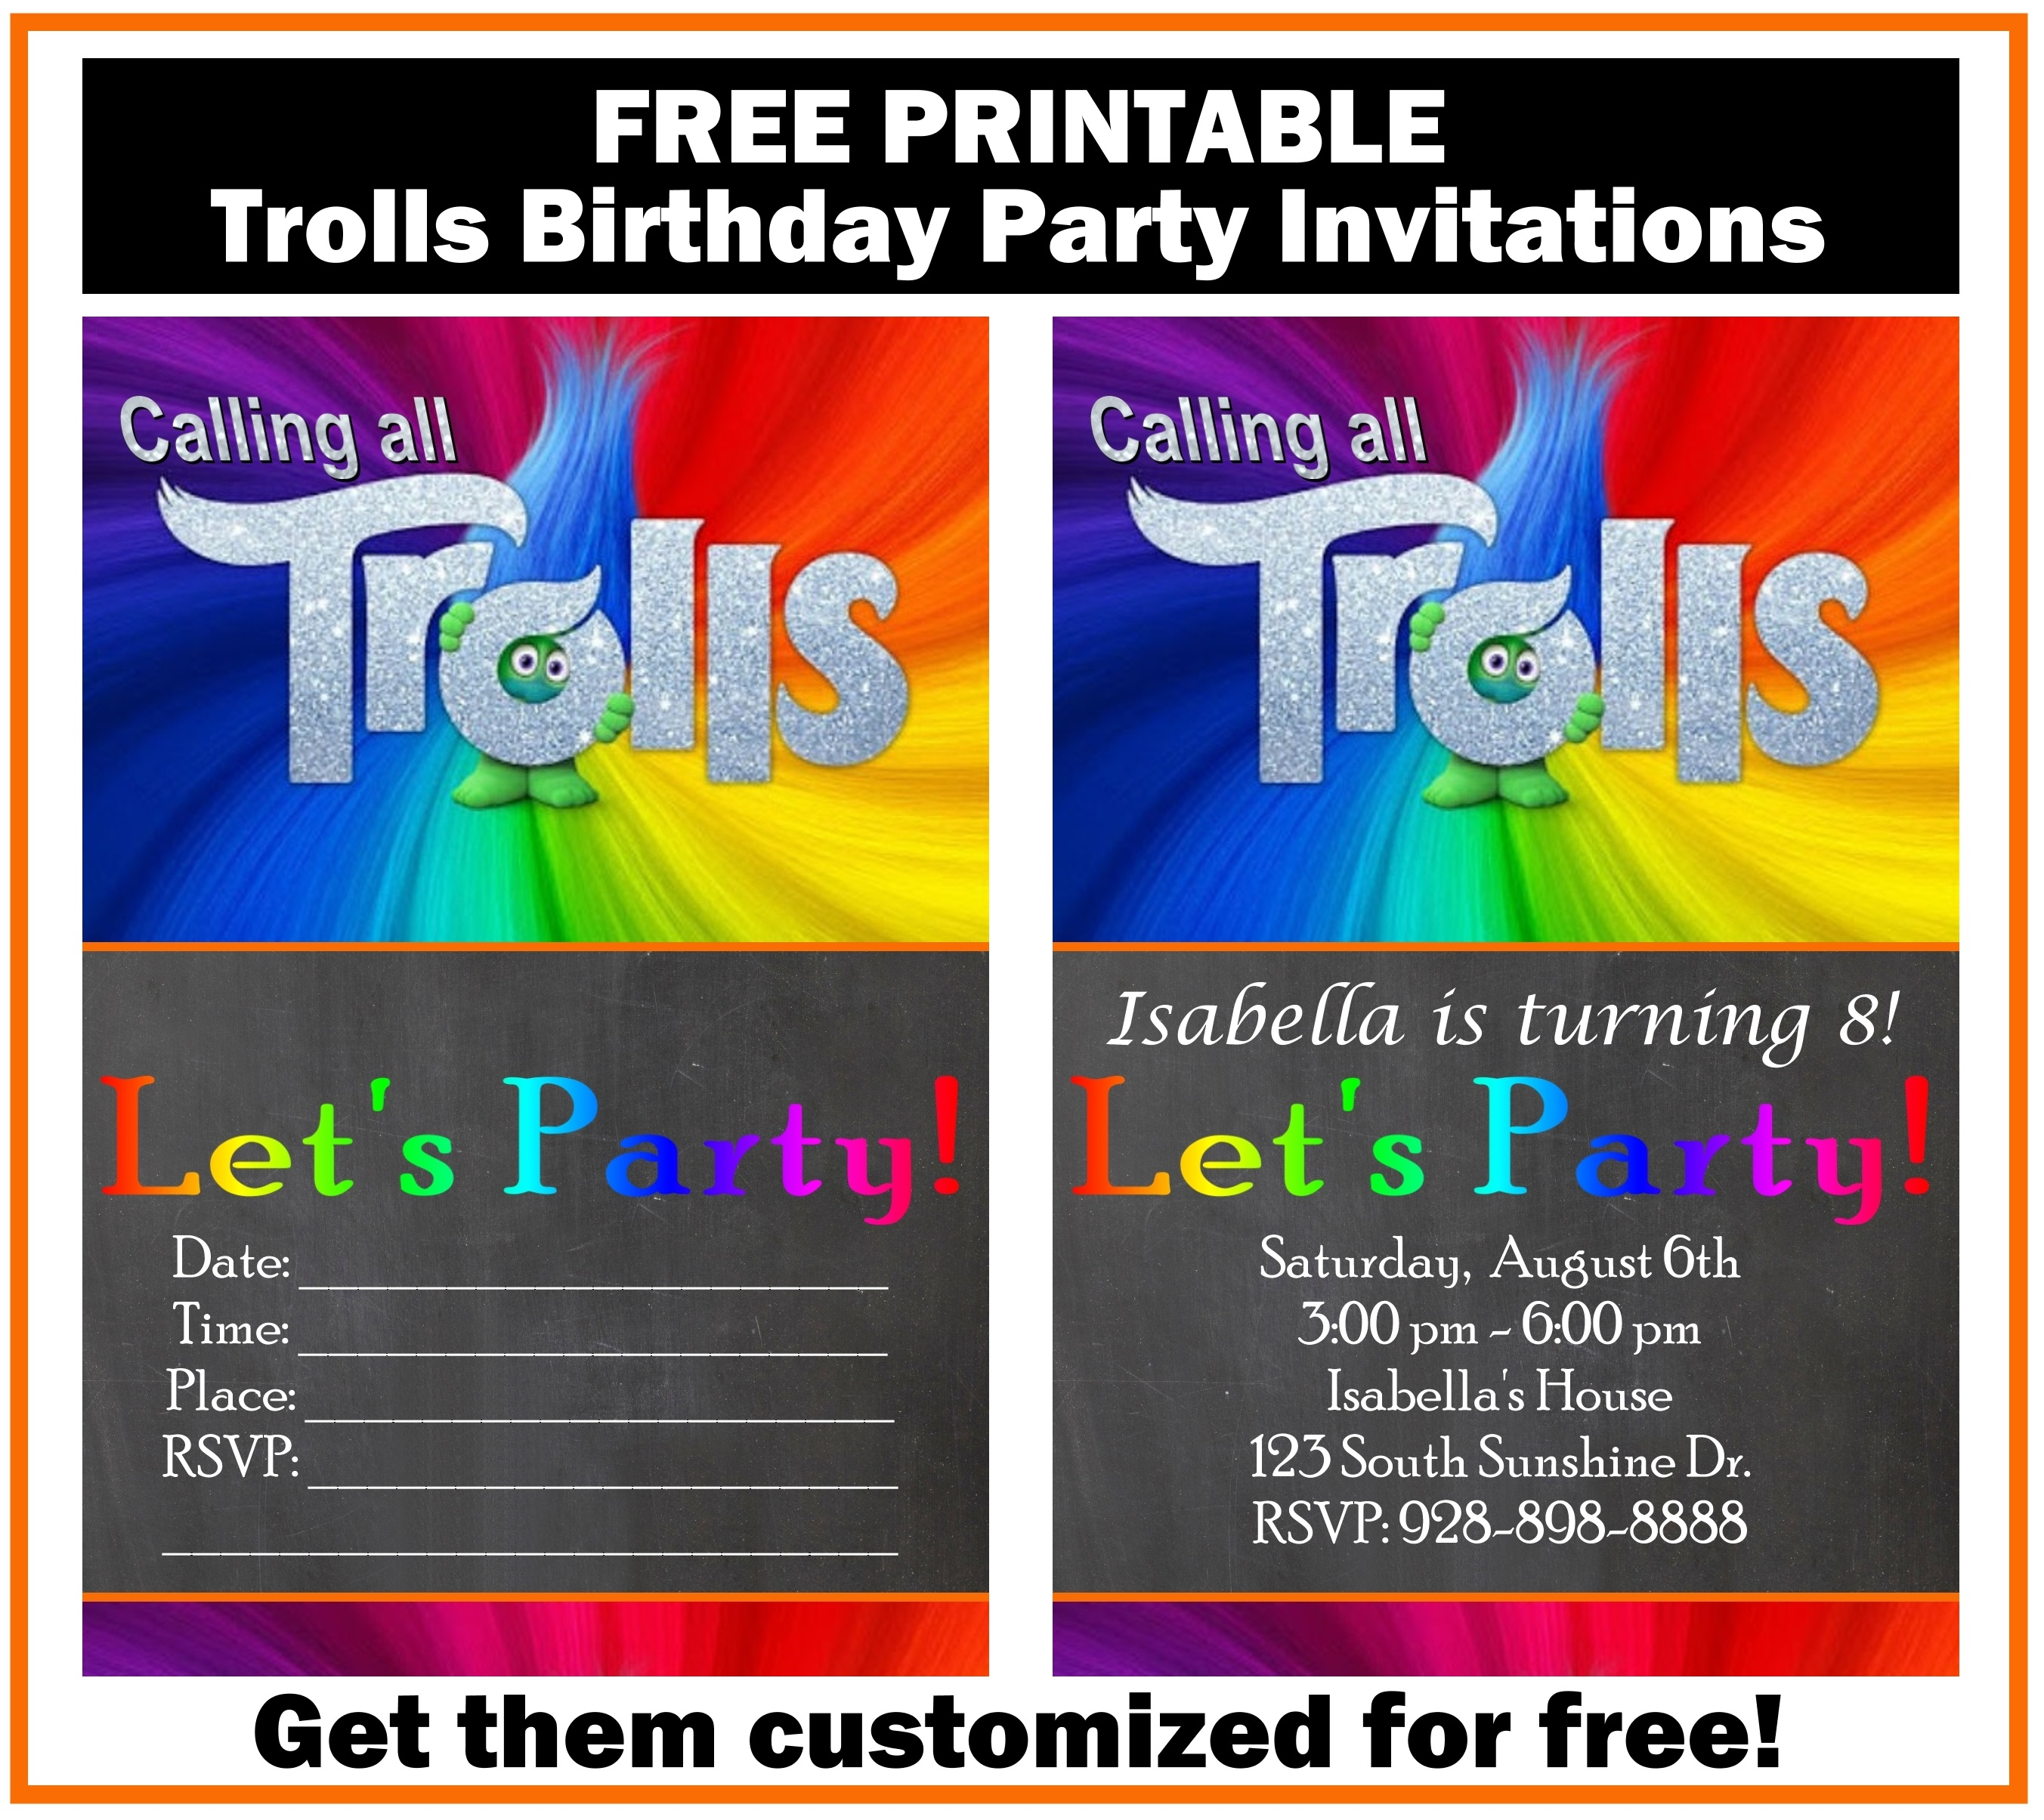 Satisfactory image intended for free printable trolls invitations